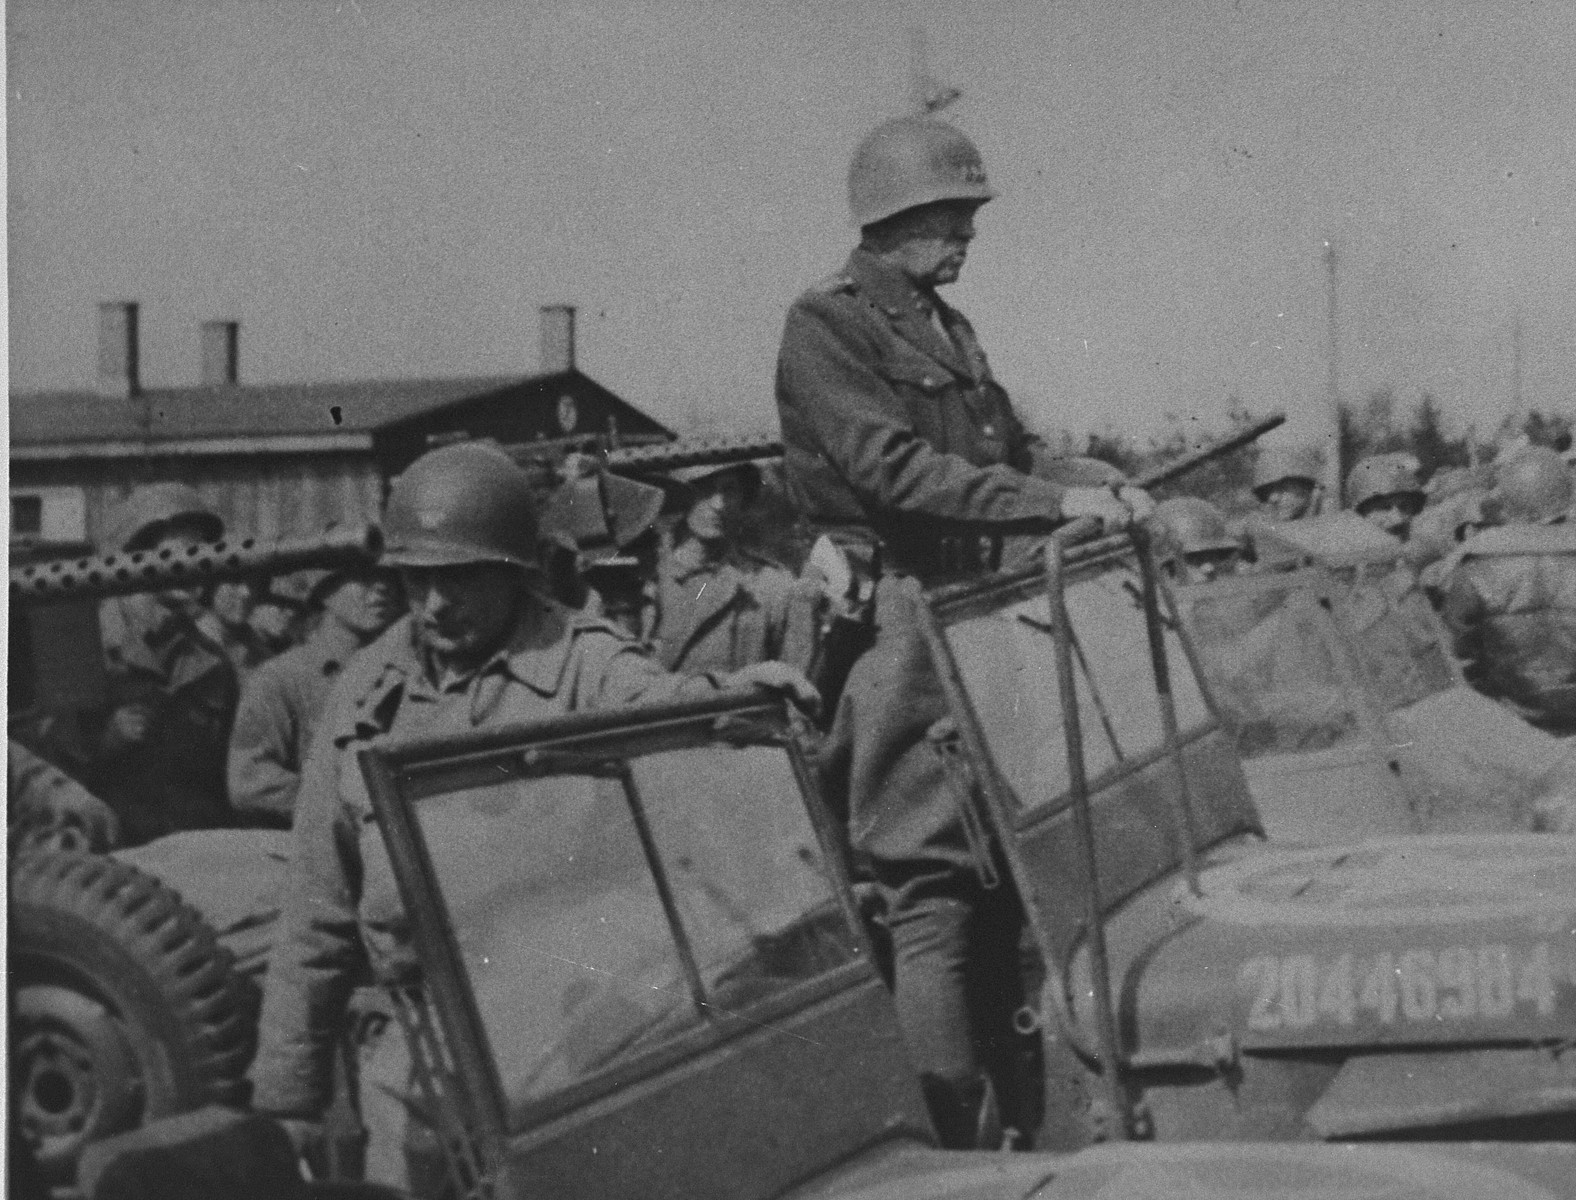 General George Patton (standing in the jeep) prepares to depart from Ohrdruf after an official tour of the newly liberated camp.